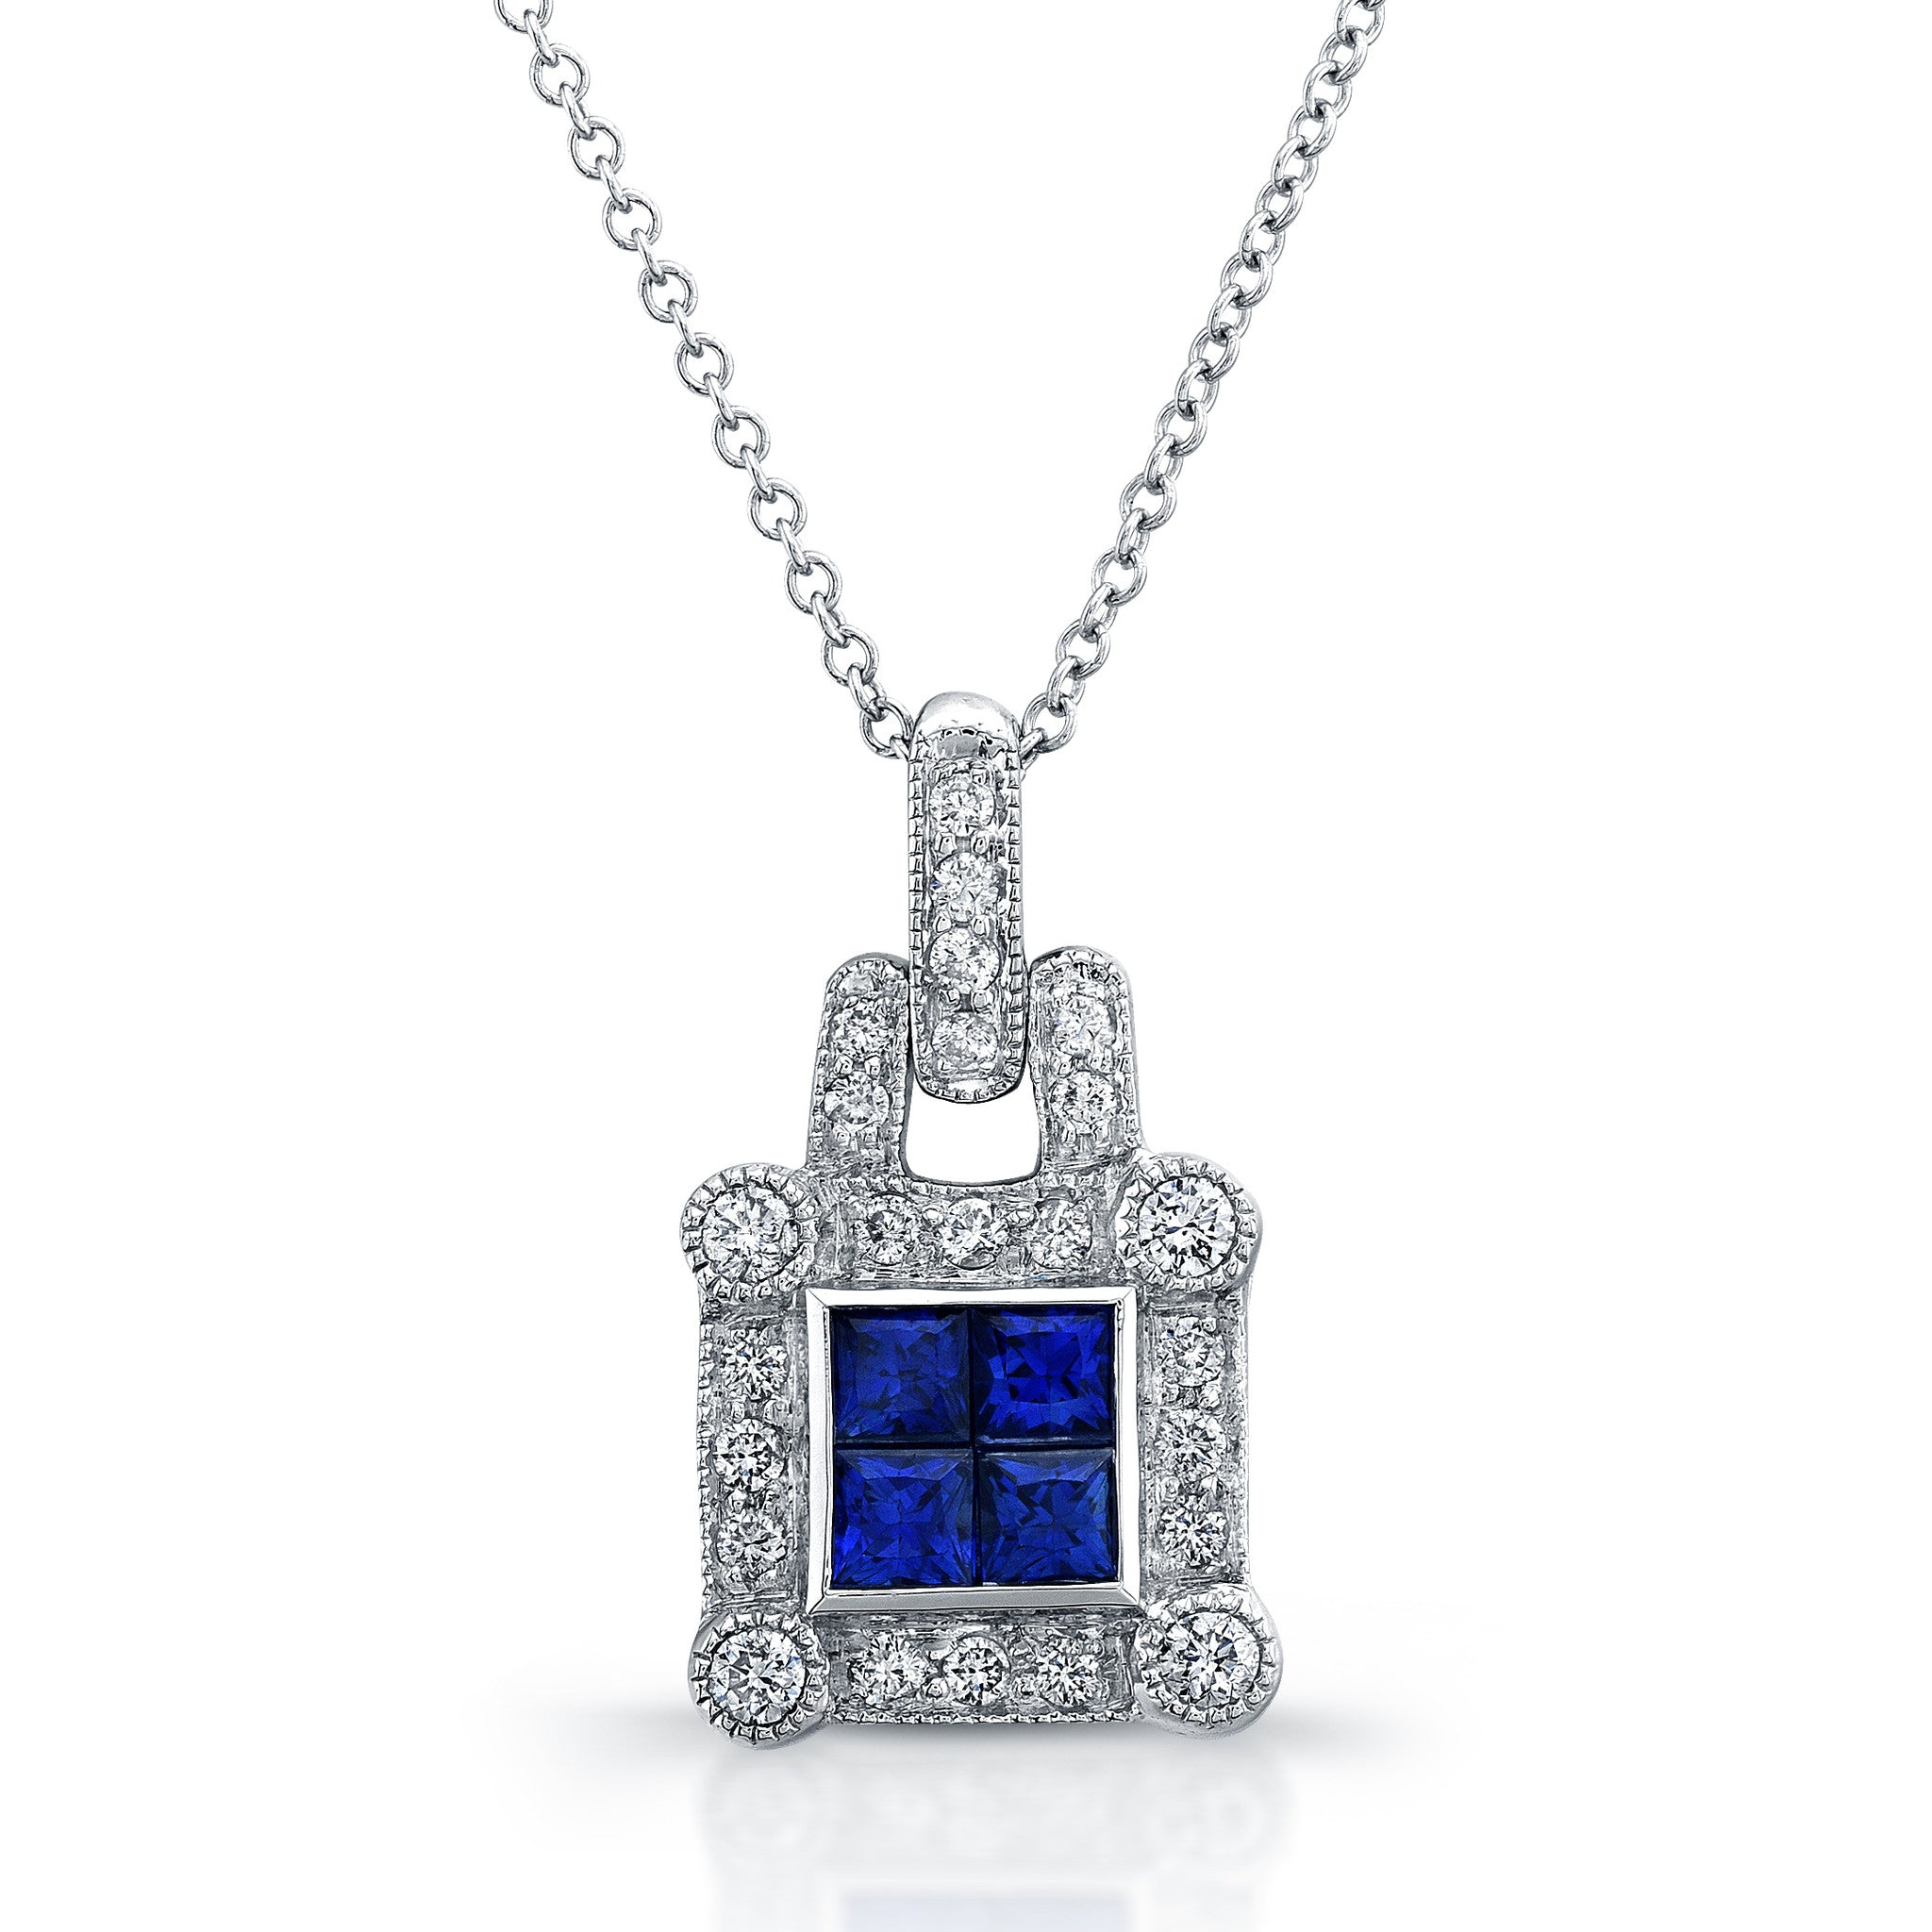 ELEGANT DIAMOND SAPPHIRE PENDANT INVISIBLE SETTING 18K WHITE GOLD 0.91CTW